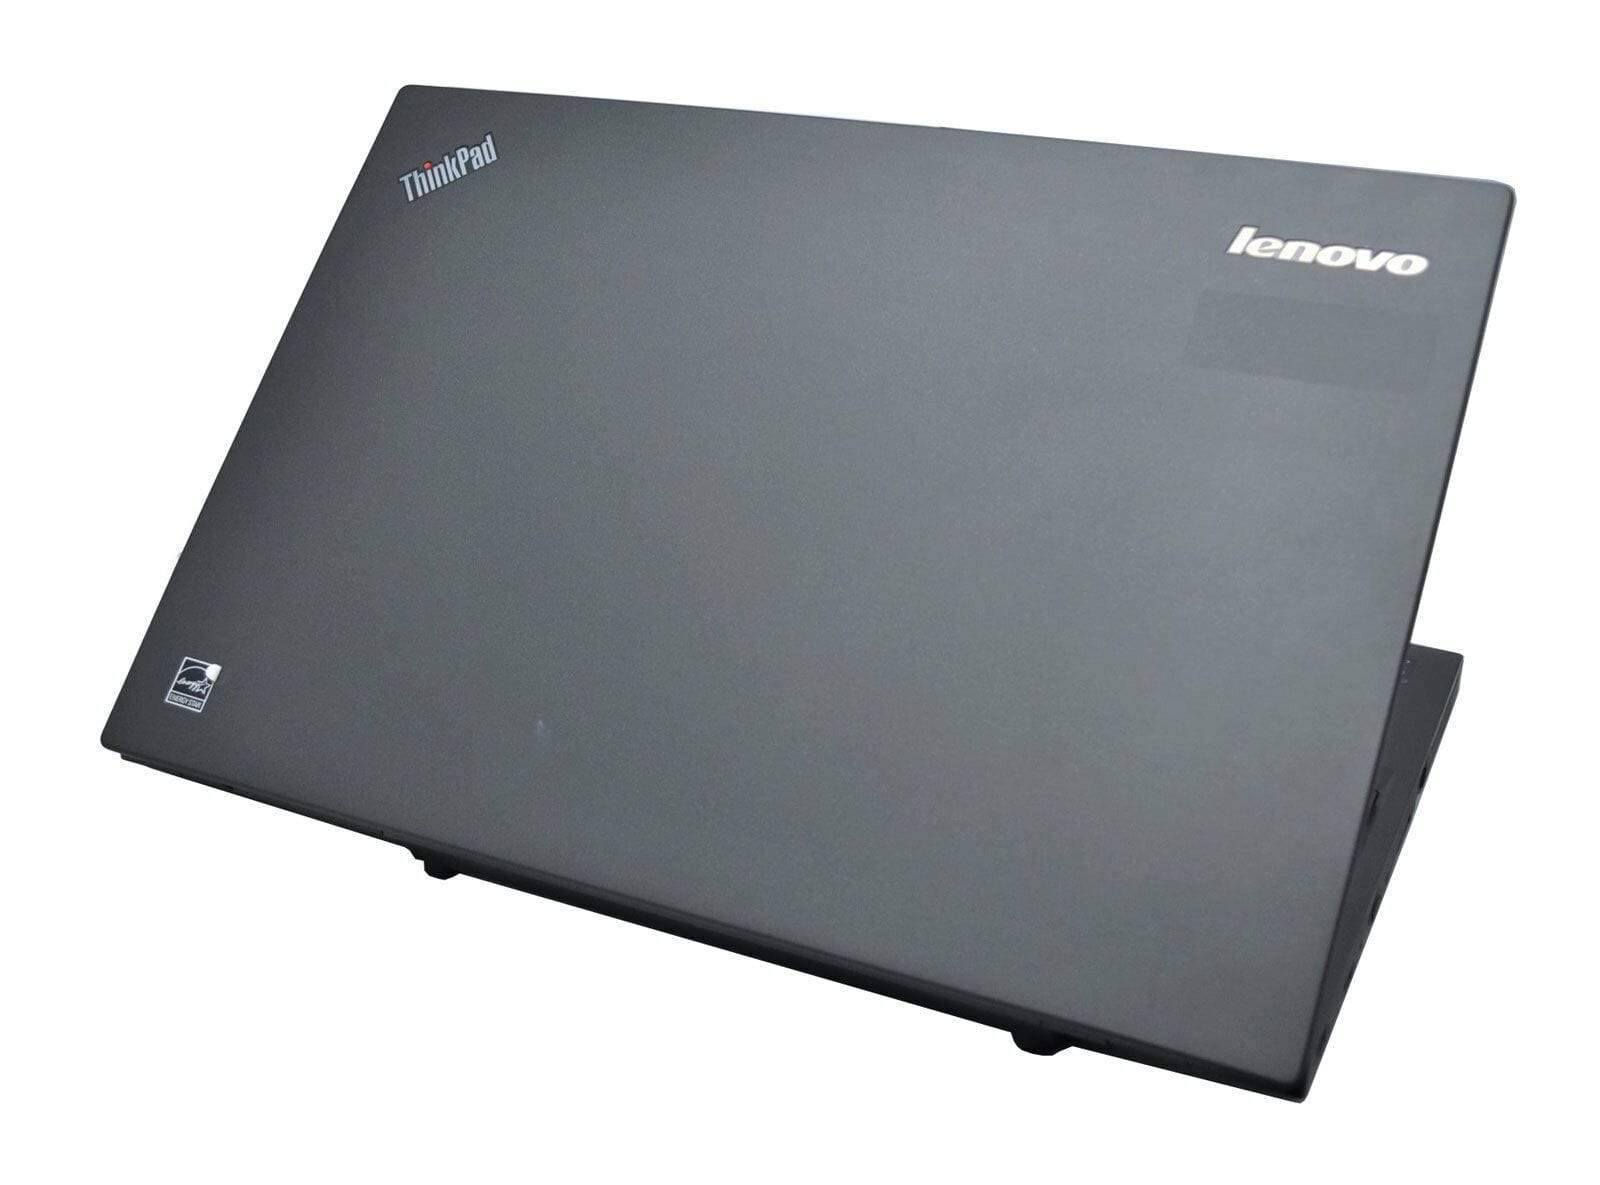 Lenovo ThinkPad W550s 3K Touch Laptop: Core i7-5600U 16GB RAM 256GB Warranty VAT - CruiseTech